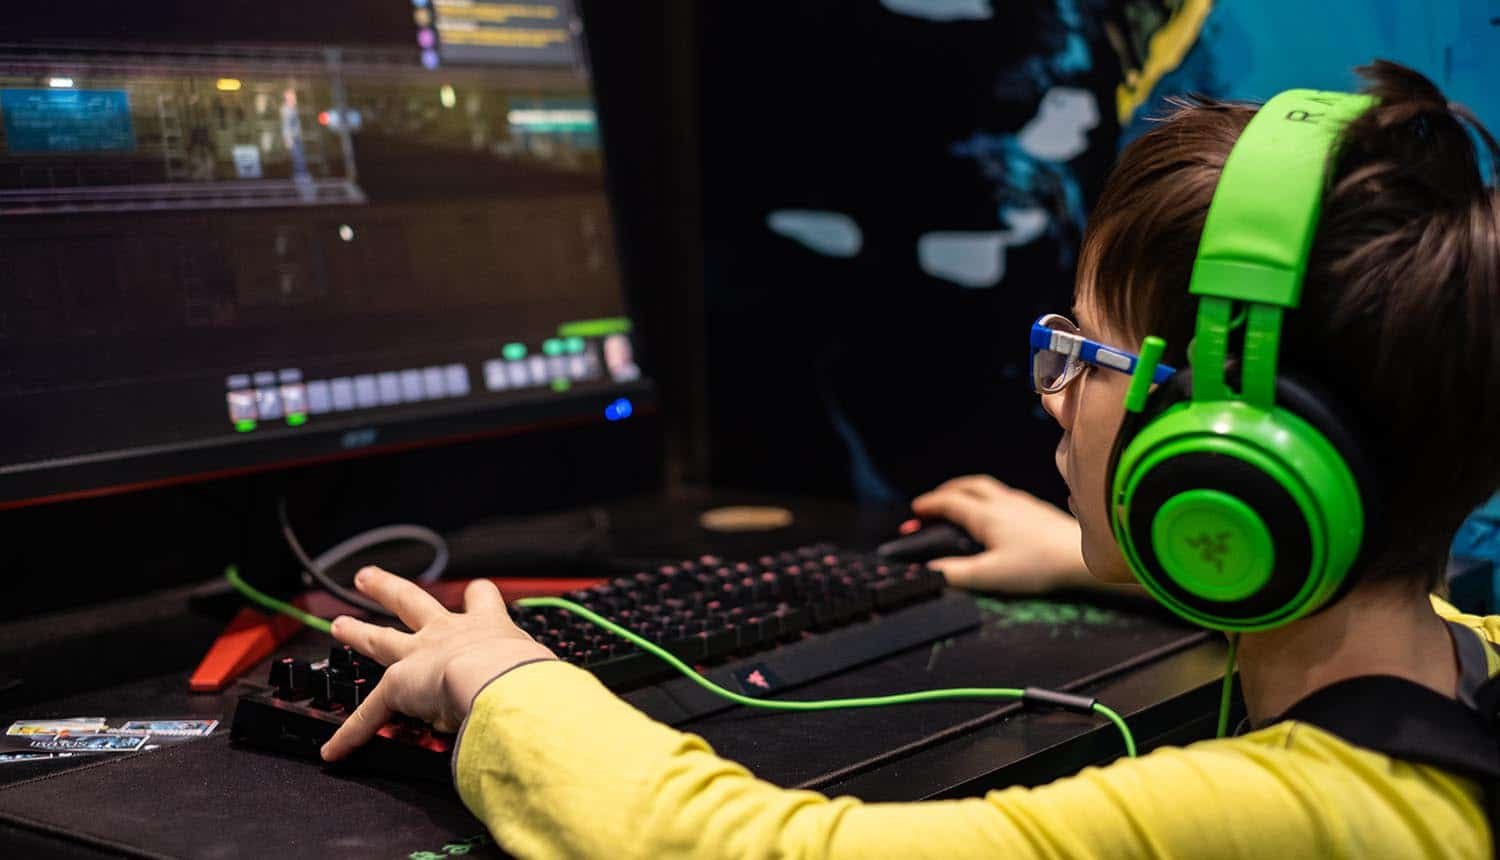 Teenager testing a new computer game with Razer equipment showing data leak of cloud databases